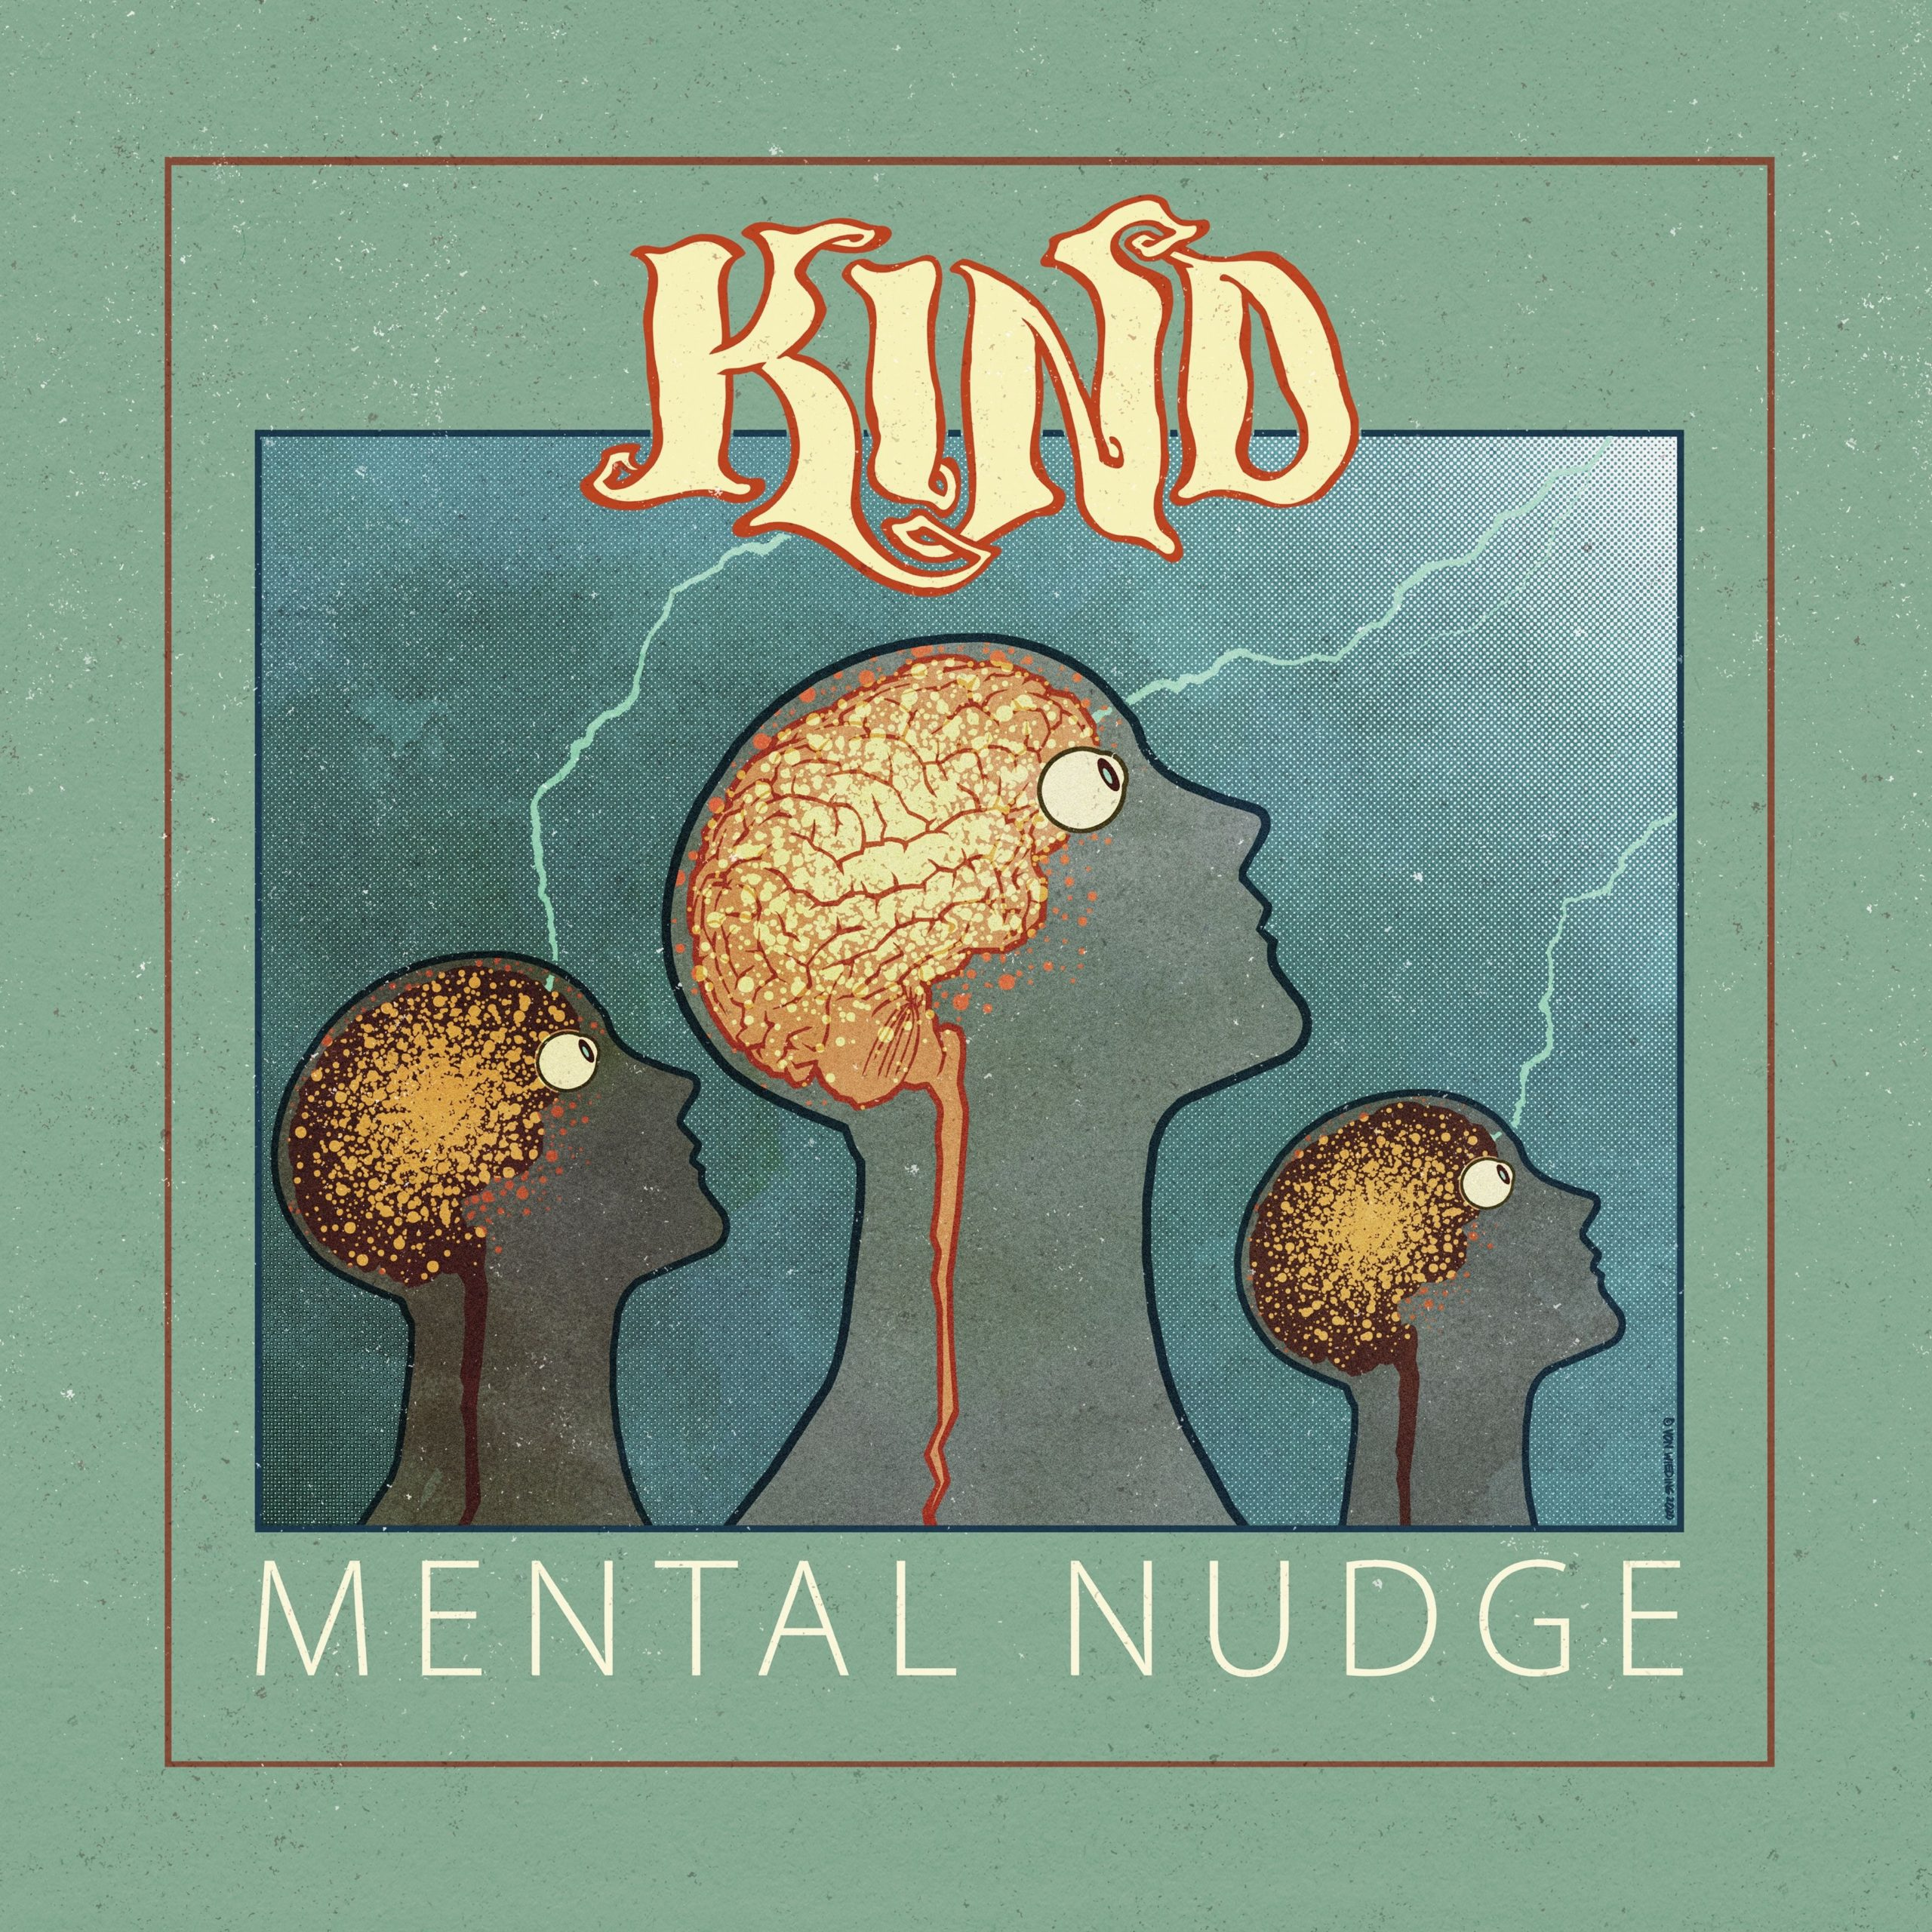 kind mental nudge